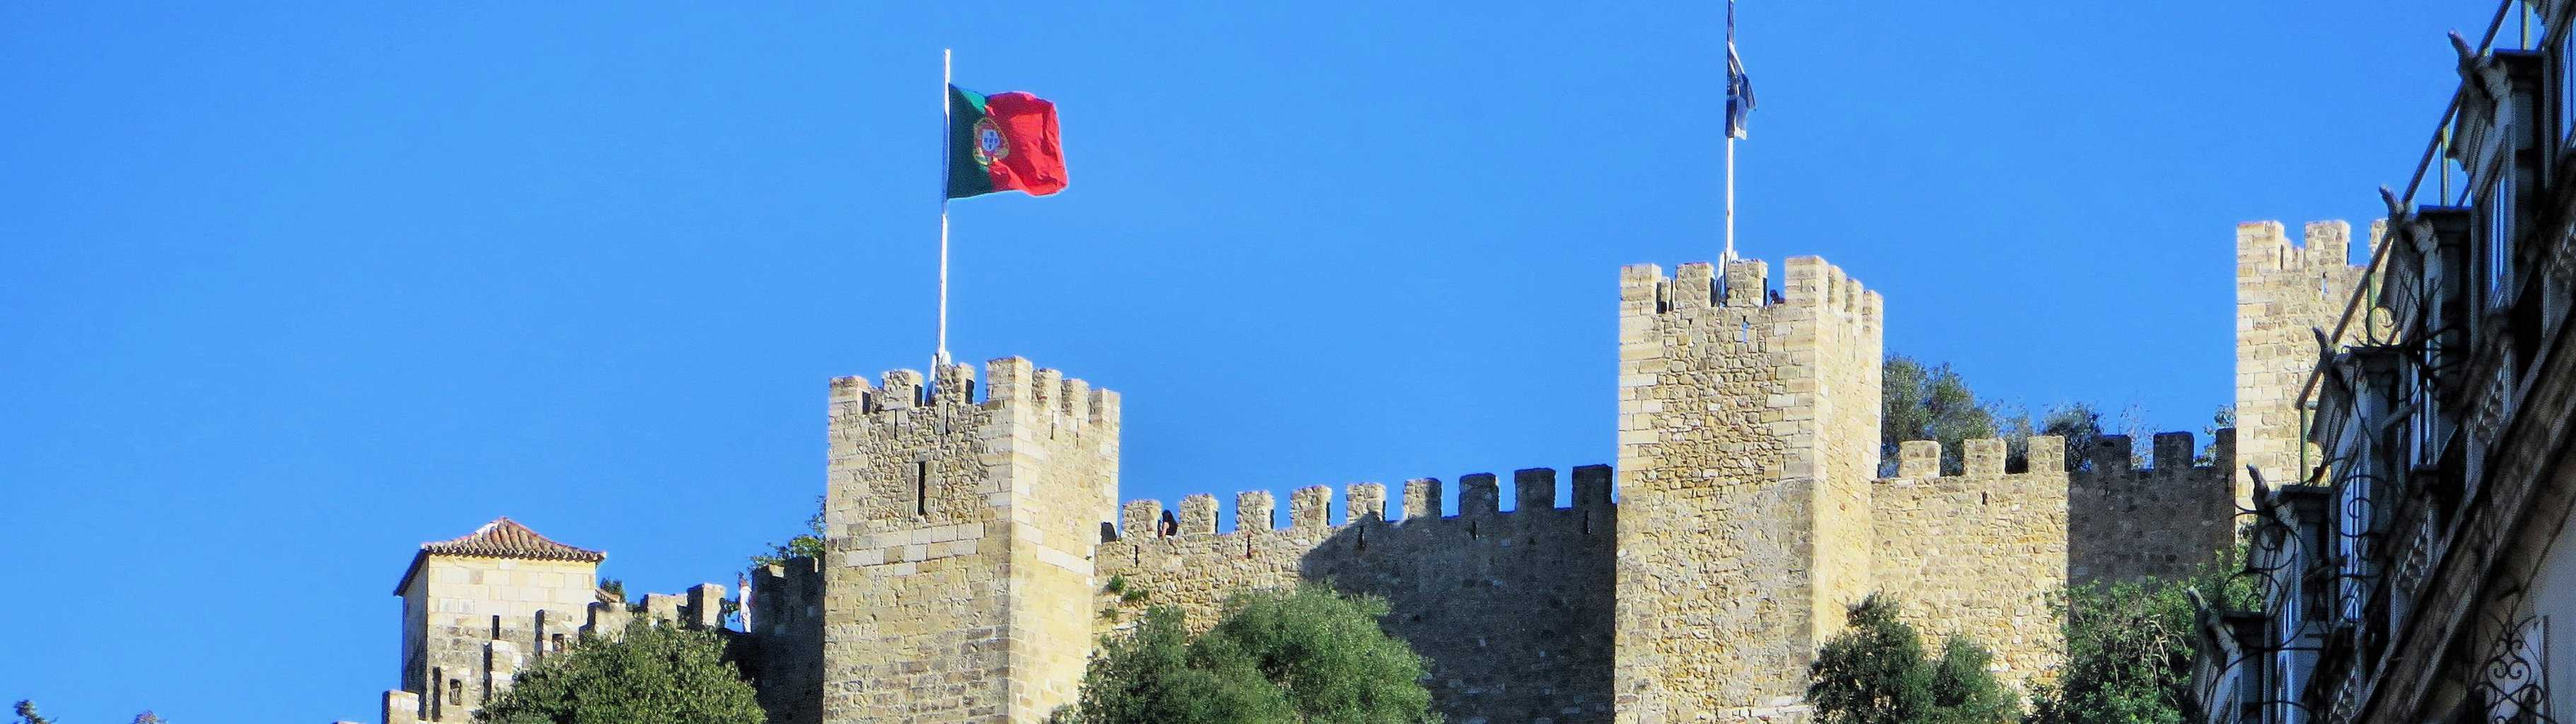 Archaeology Travel   Castles in Portugal   4